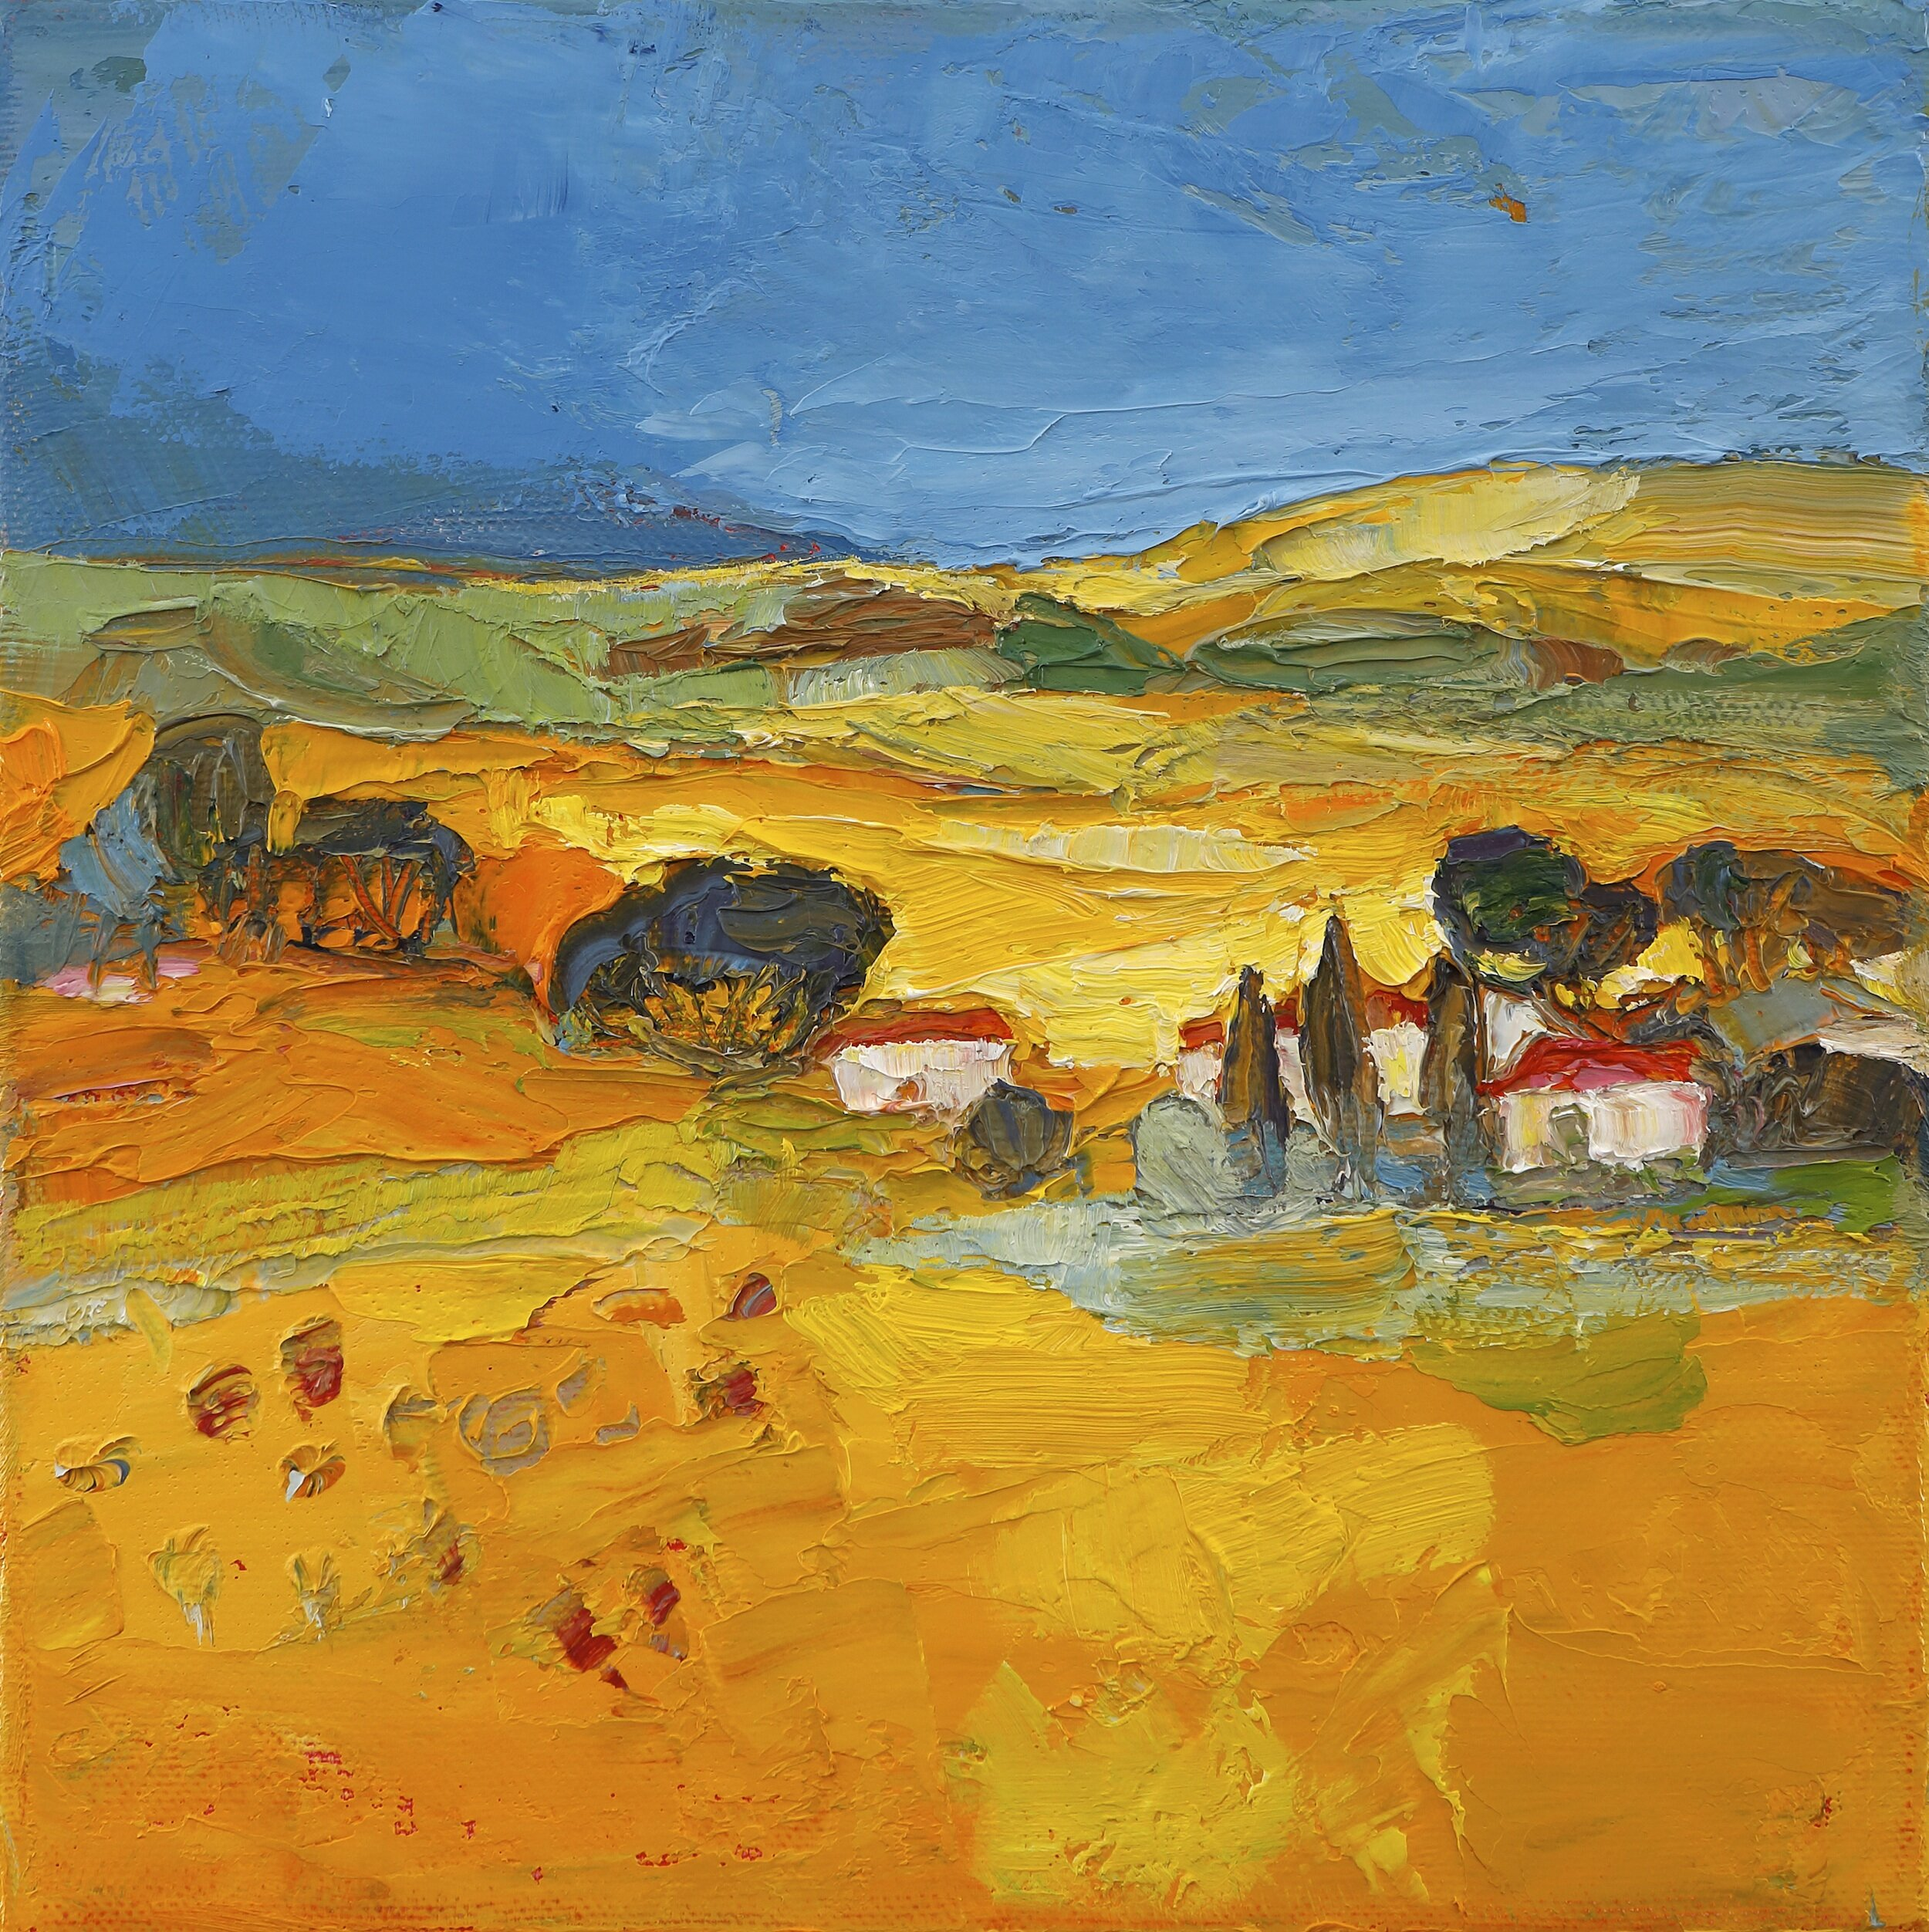 Title: Little Acre  Size: 8x8in  Medium: Oil on Canvas  Price: £950